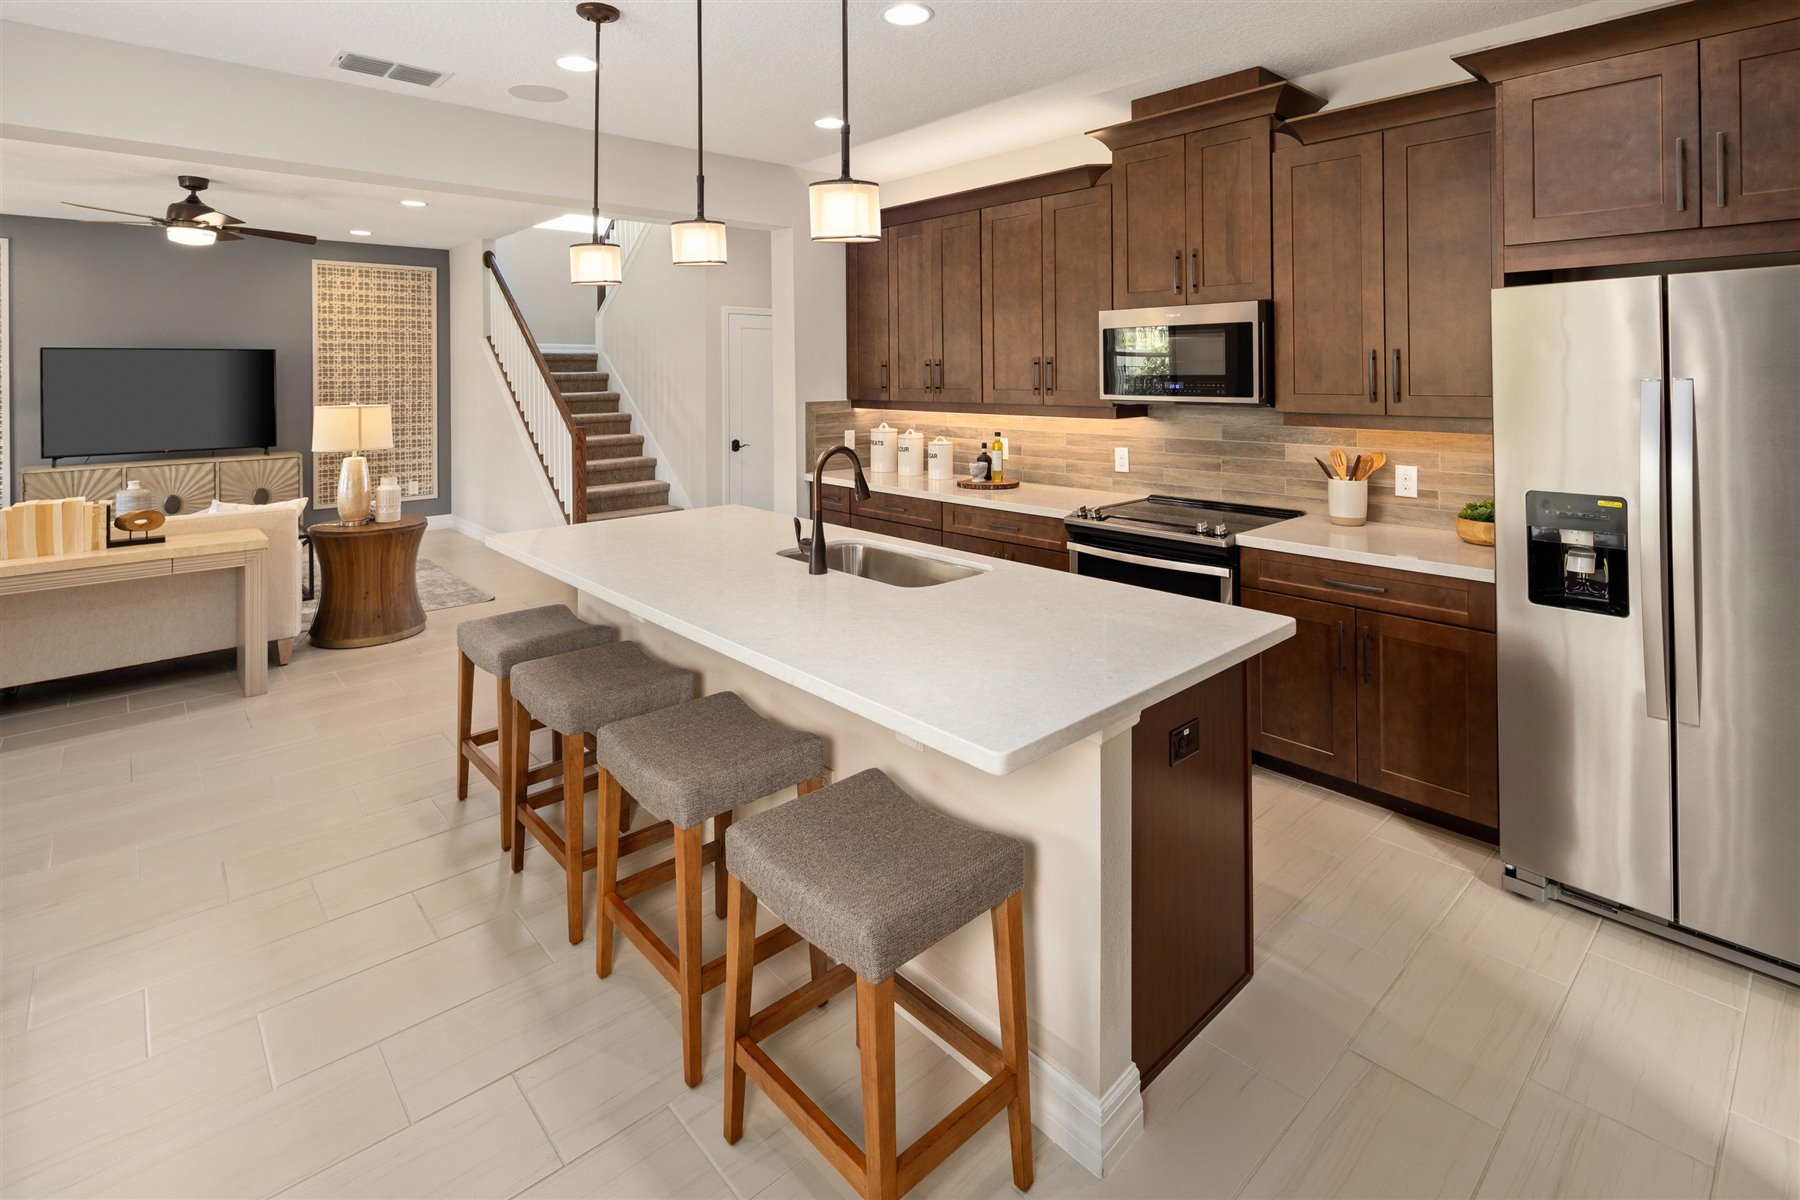 Griffin Plan Kitchen at Waterbrooke in Clermont Florida by Mattamy Homes